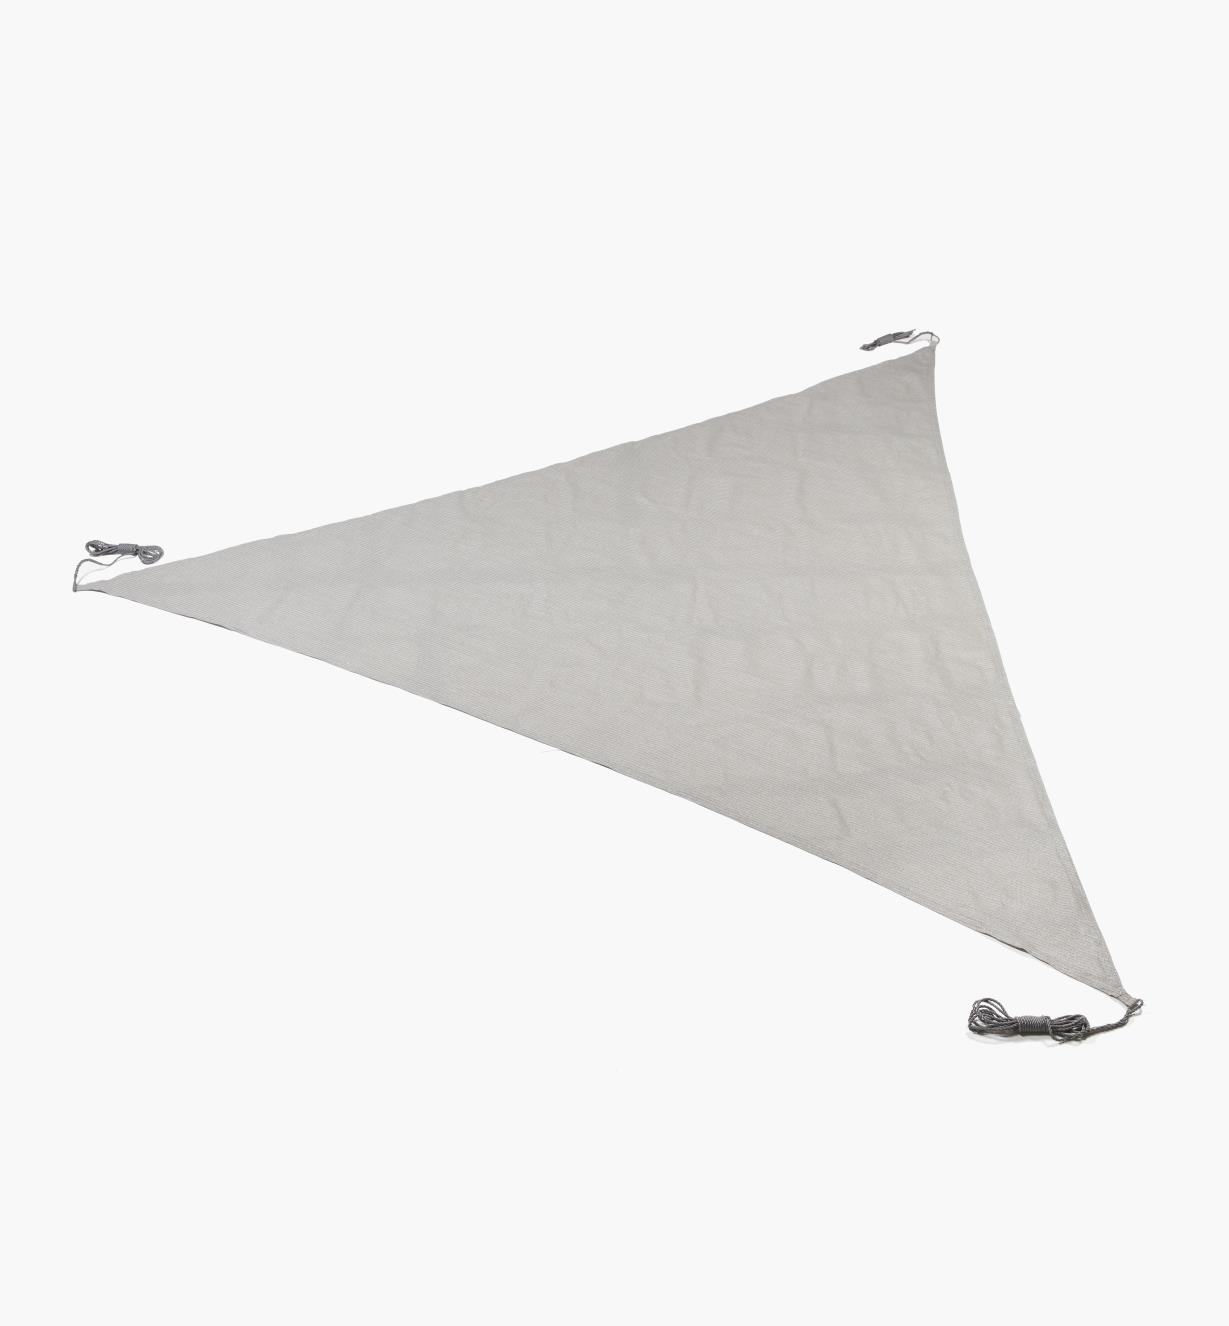 "BL614S - Coolaroo 11'10"" Triangle Shade Sail"